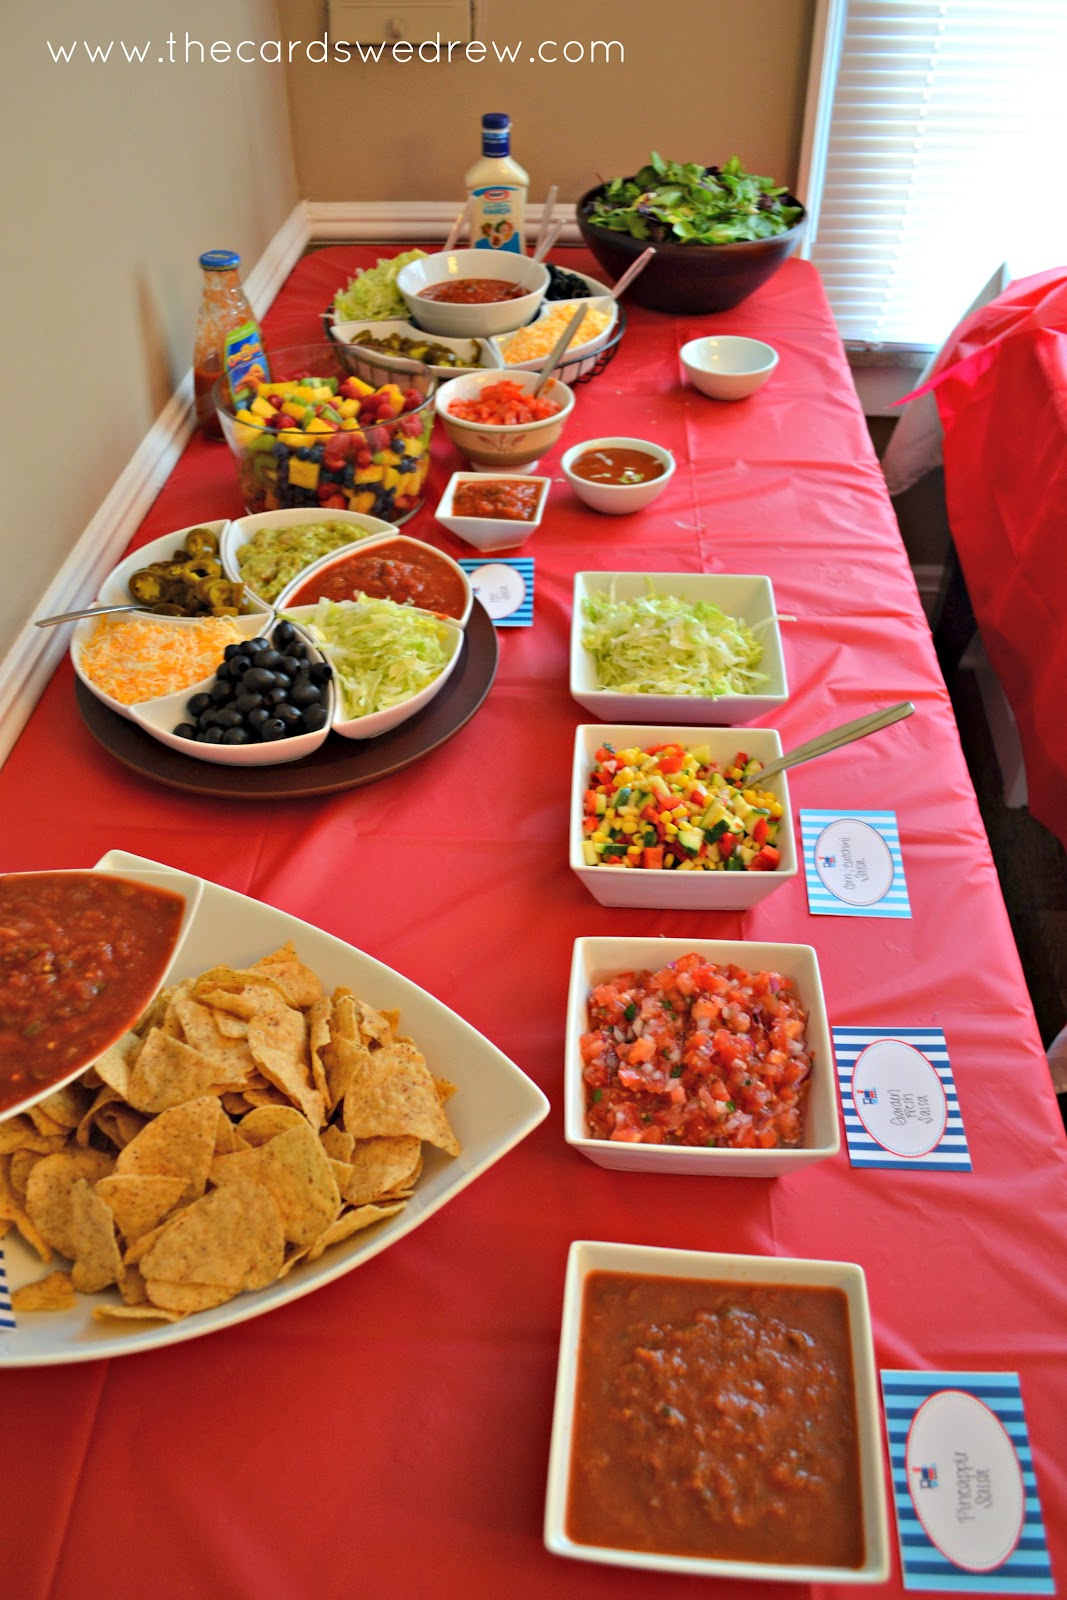 Taco bar tacobar taco parties houses warm nachos bar for Food bar ideas for a party